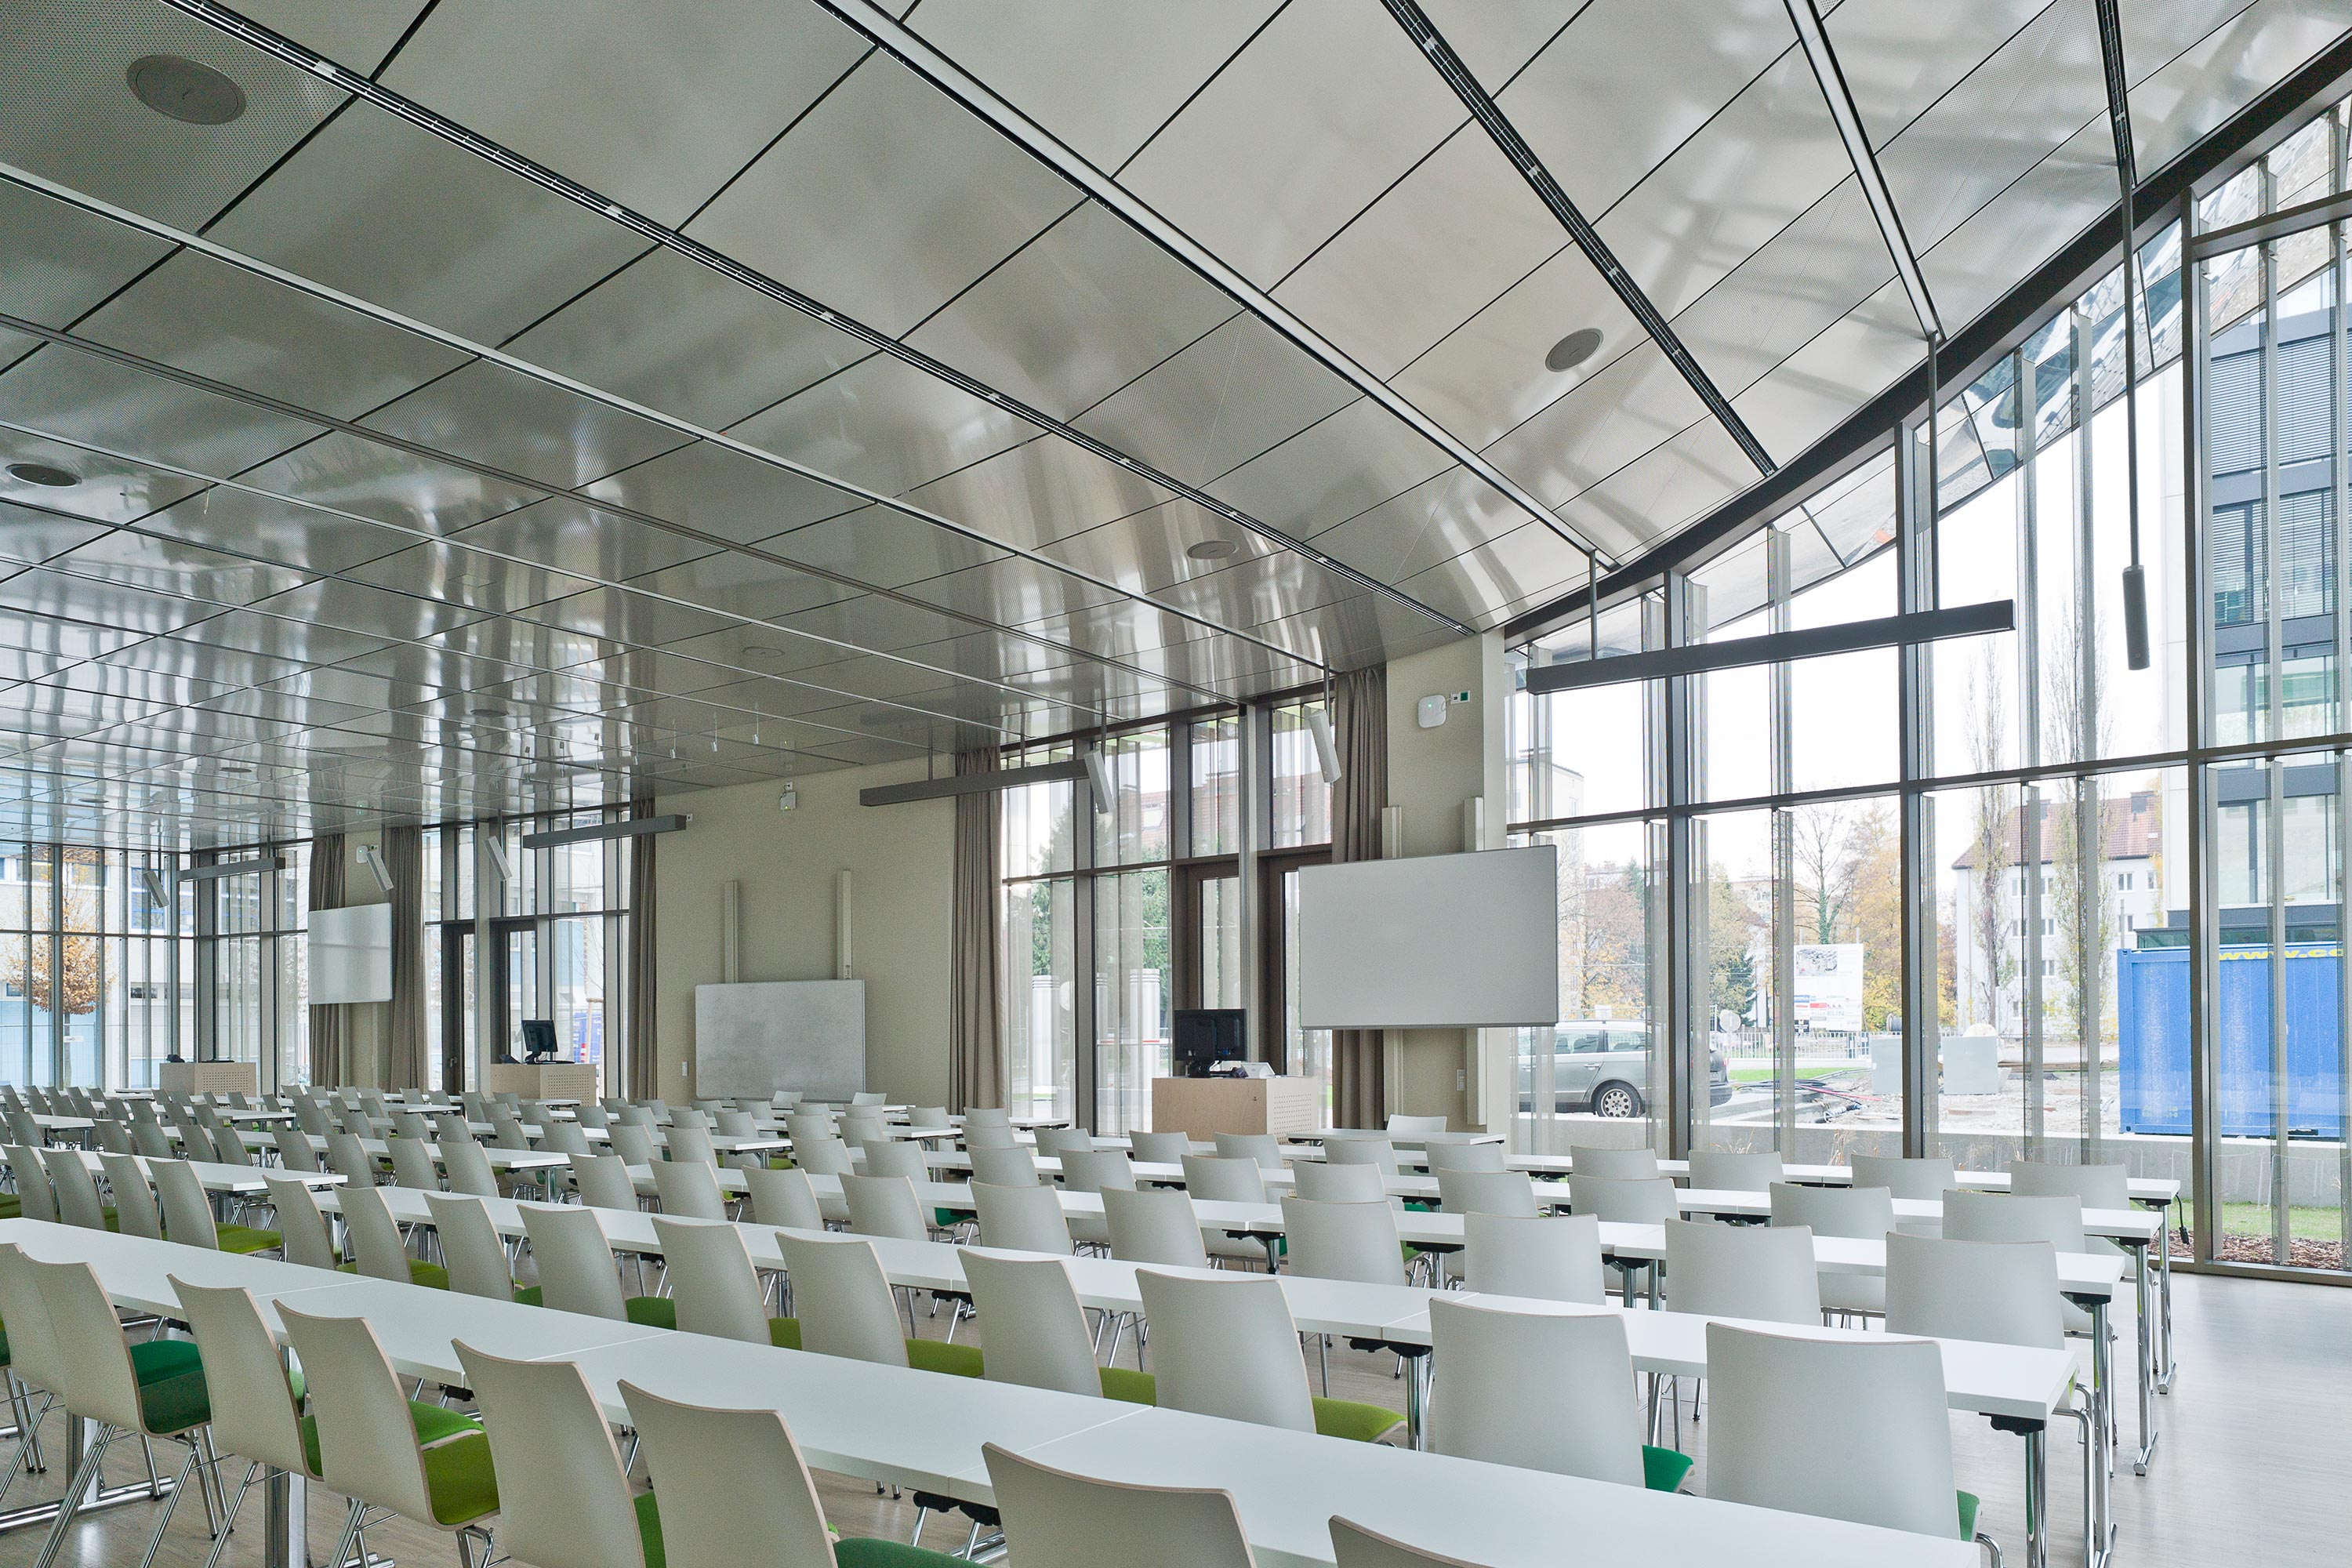 Paracelsus Medical University, lecture room. Photo: Hertha Hurnaus | Berger+Parkkinen Architekten